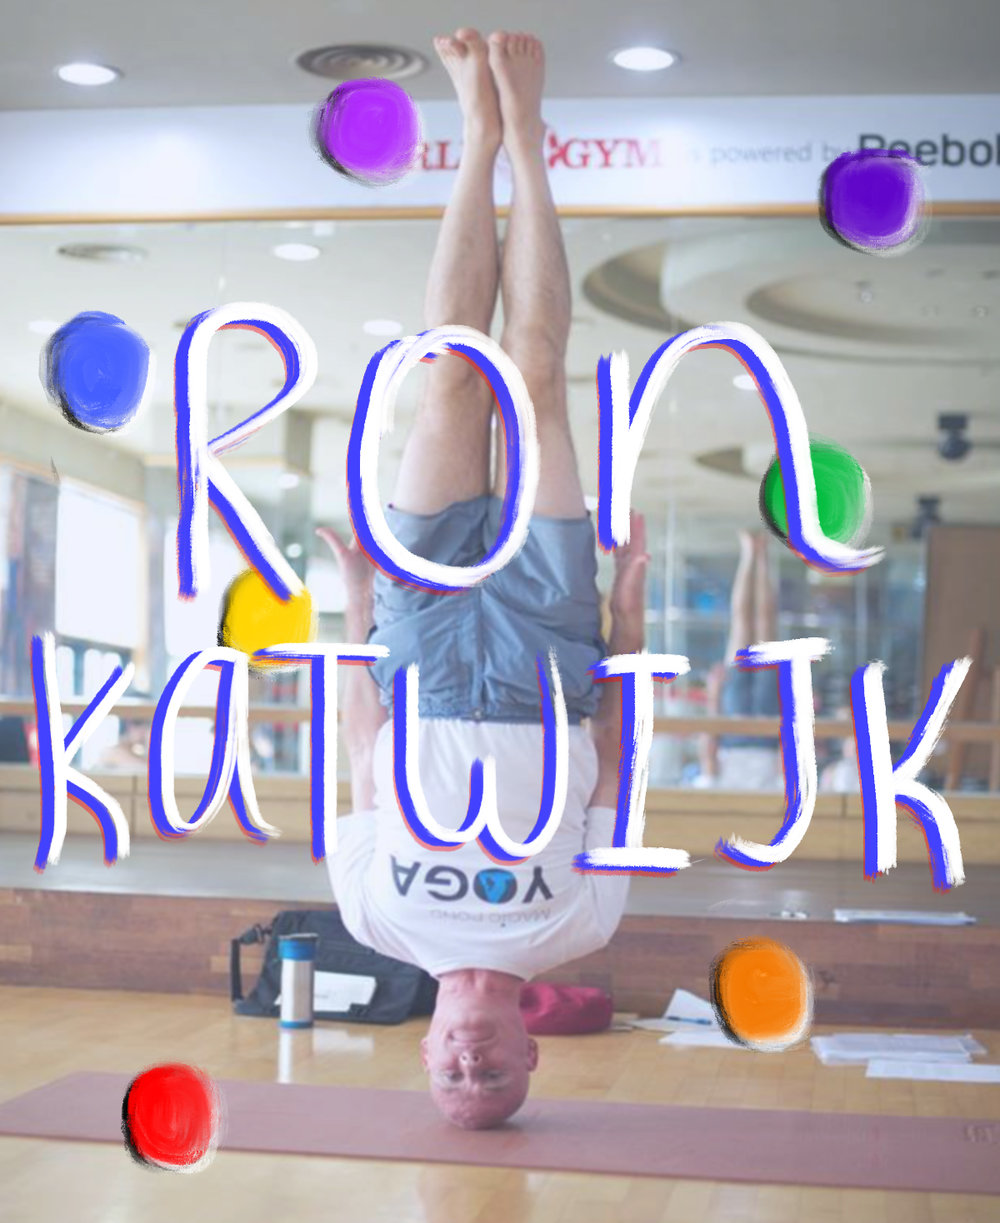 ron katwijk - cover image FINAL 2.jpg